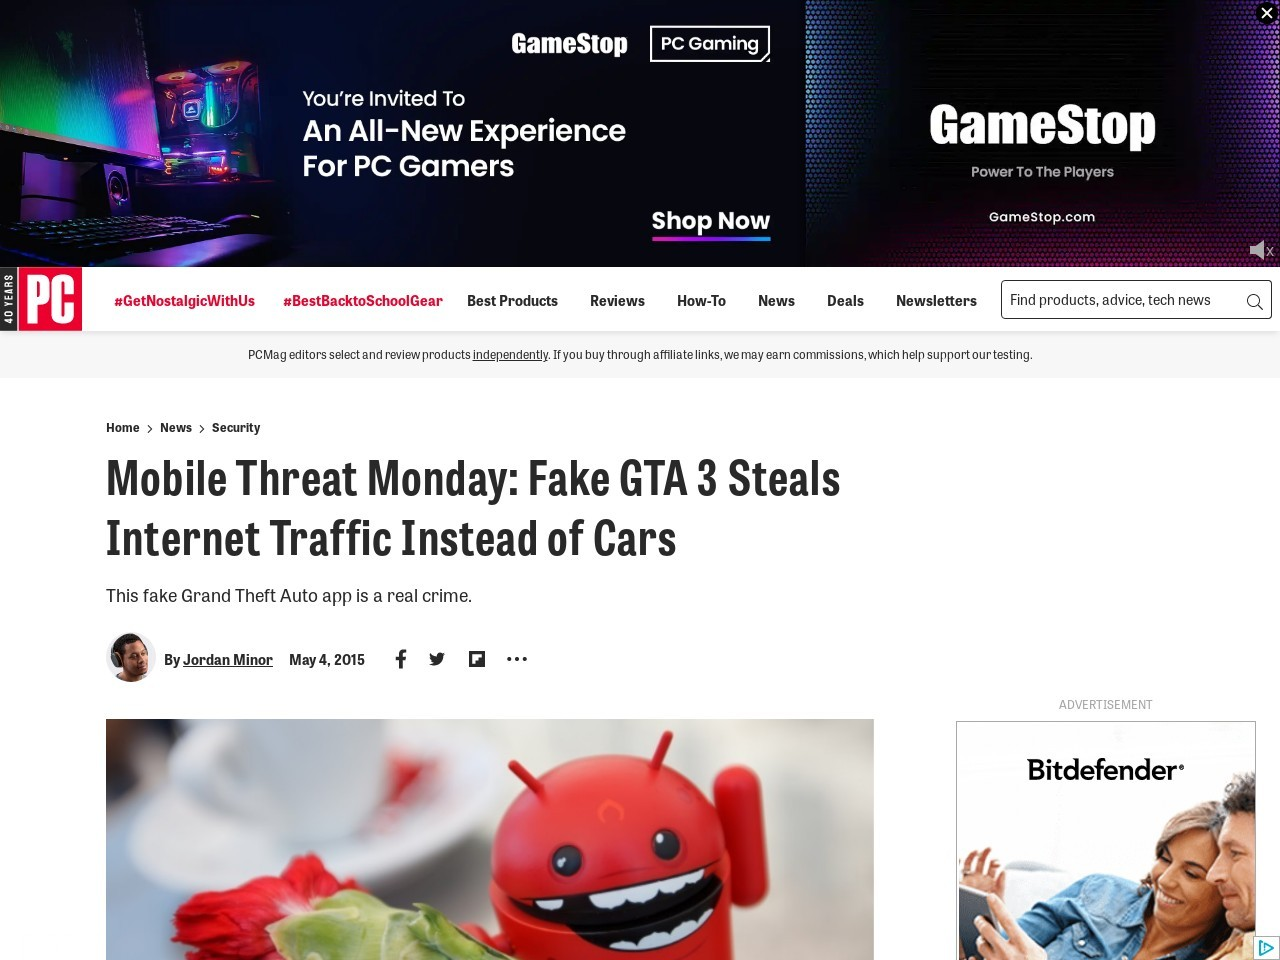 Mobile Threat Monday: Fake GTA 3 Steals Internet Traffic Instead of Cars